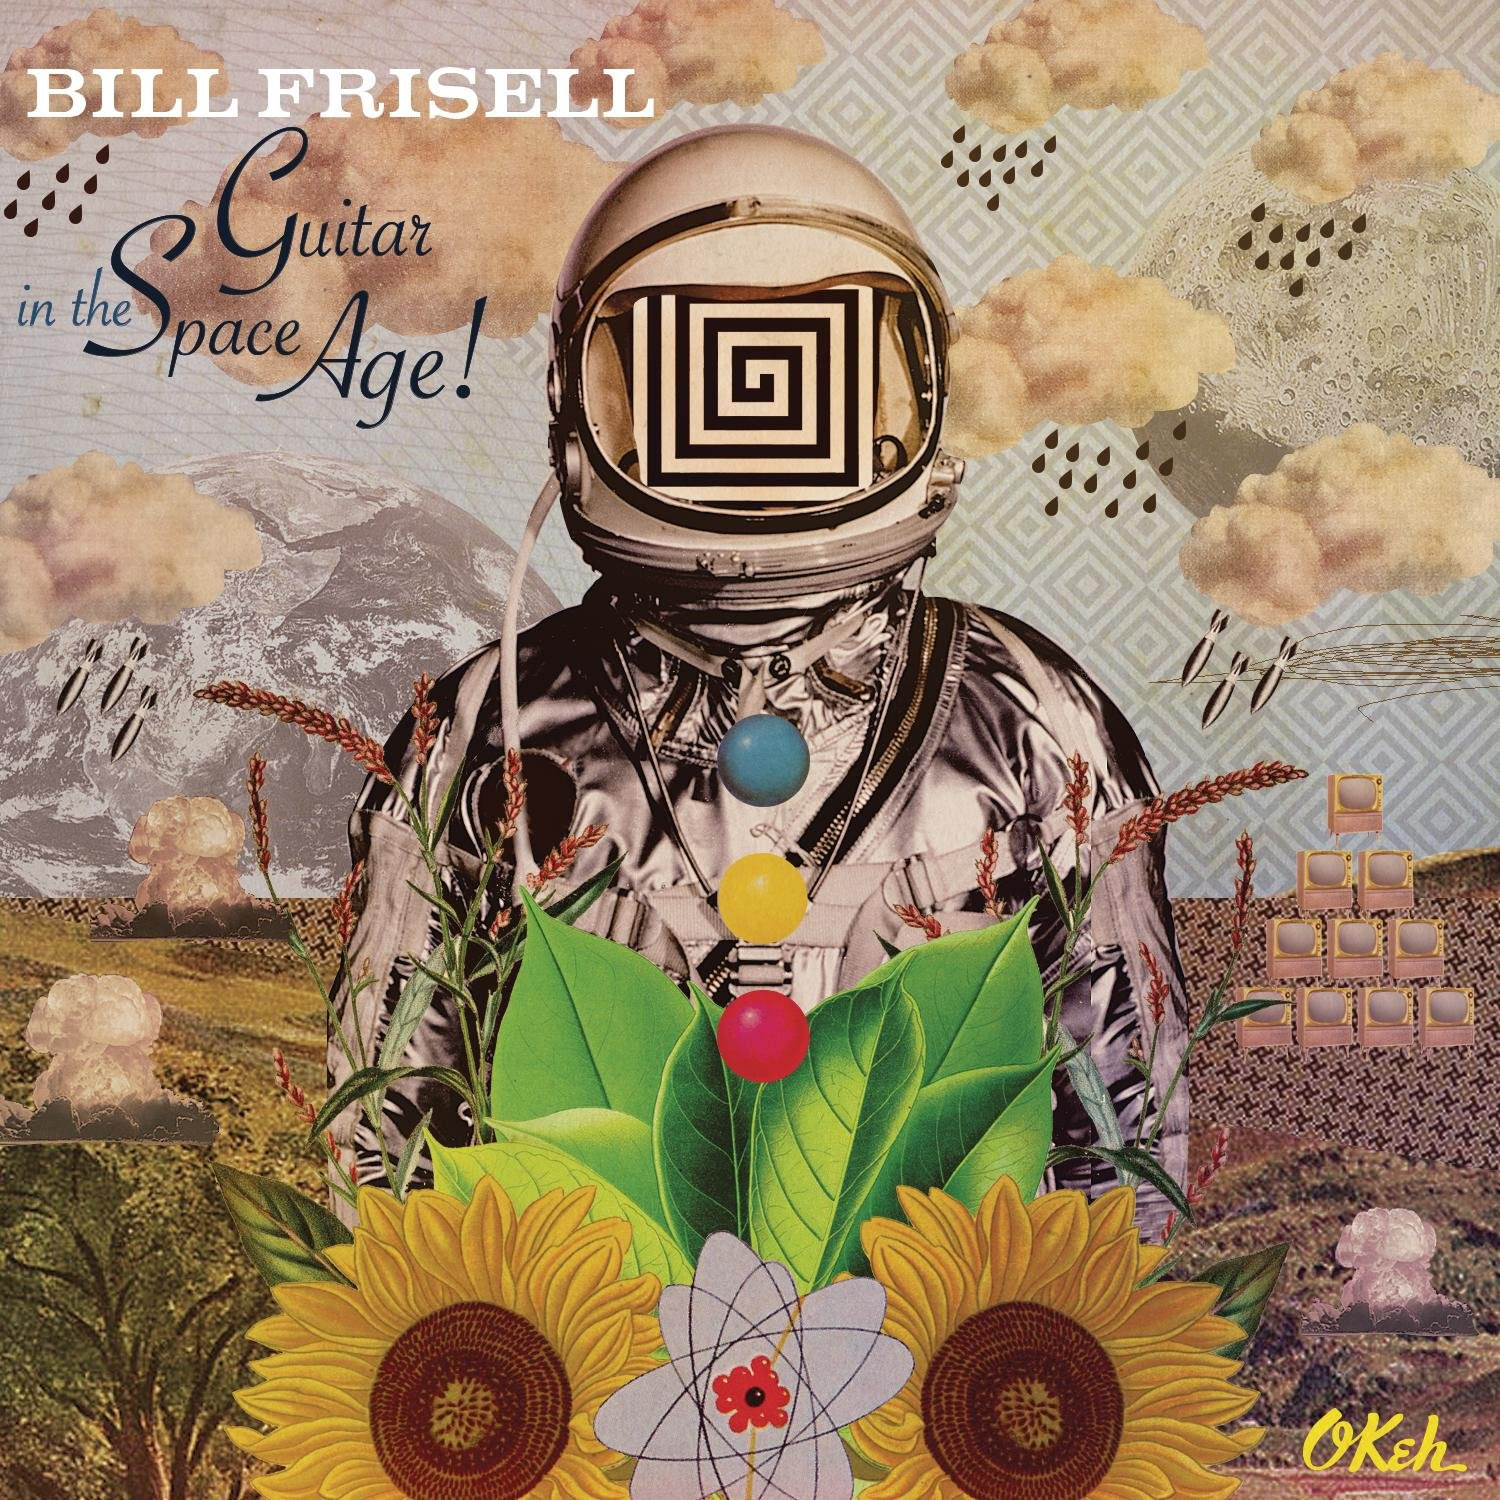 Bill Frisell - Guitar in the Space Age cover